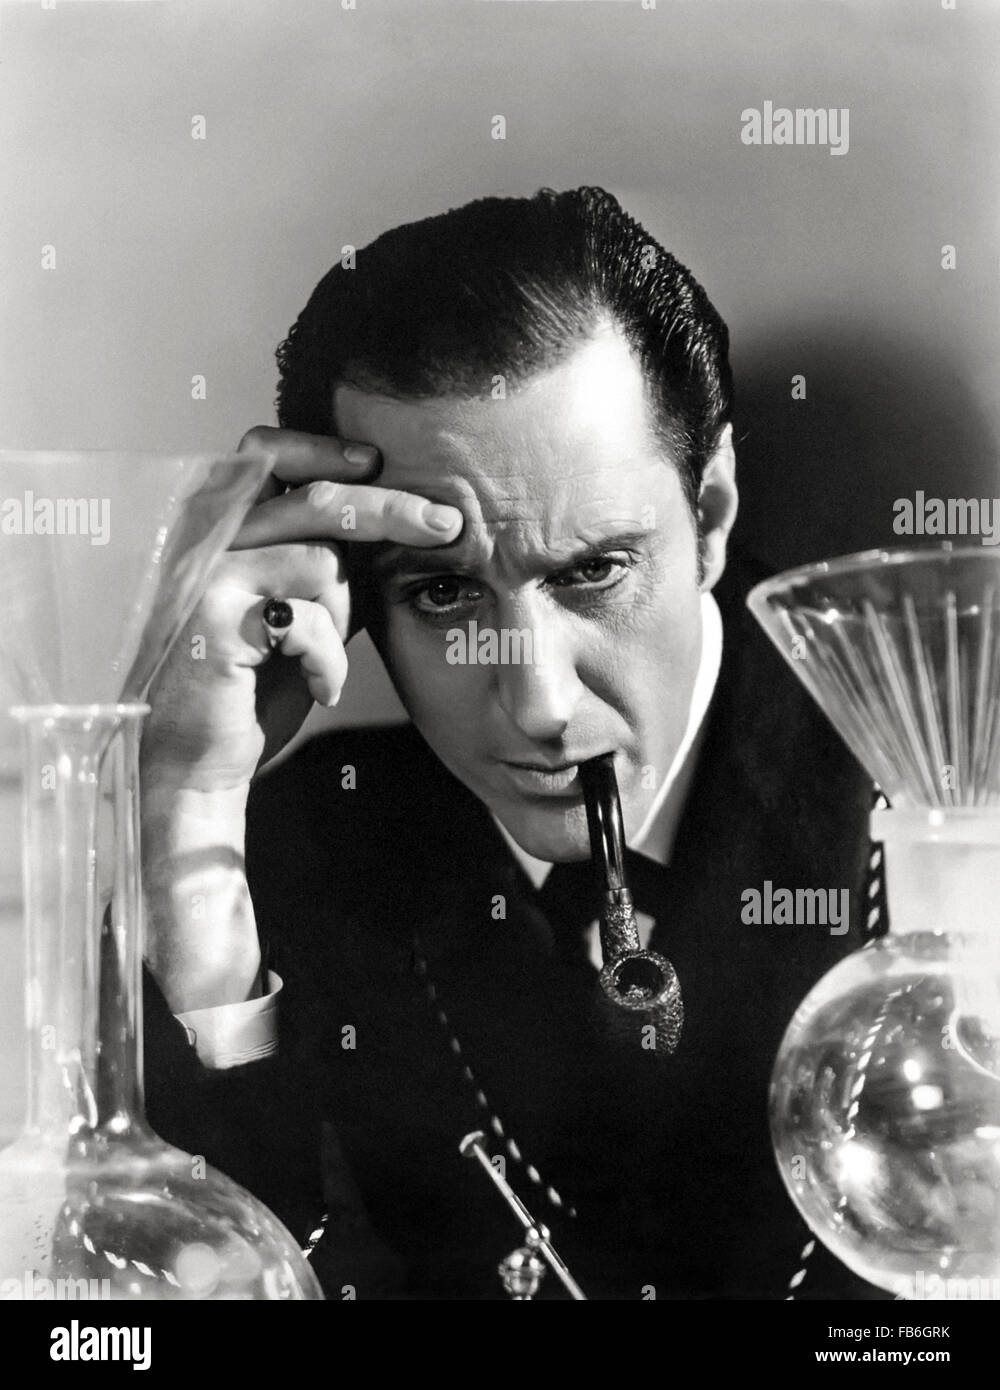 Publicity photograph showing Sherlock Holmes played by Basil Rathbone conducting a scientific experiment, released - Stock Image